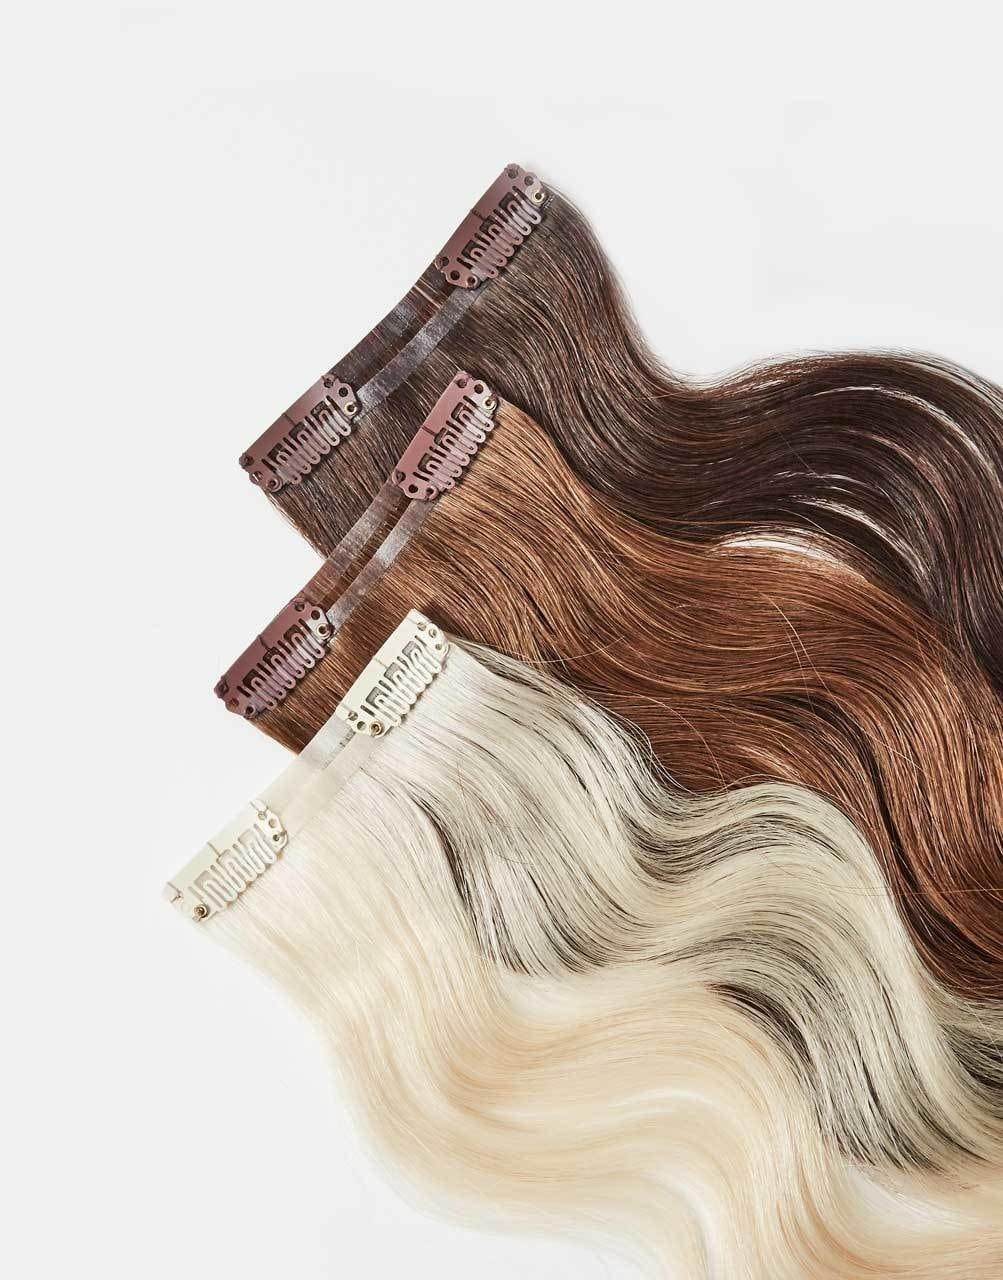 clip-on extensions in various shades.